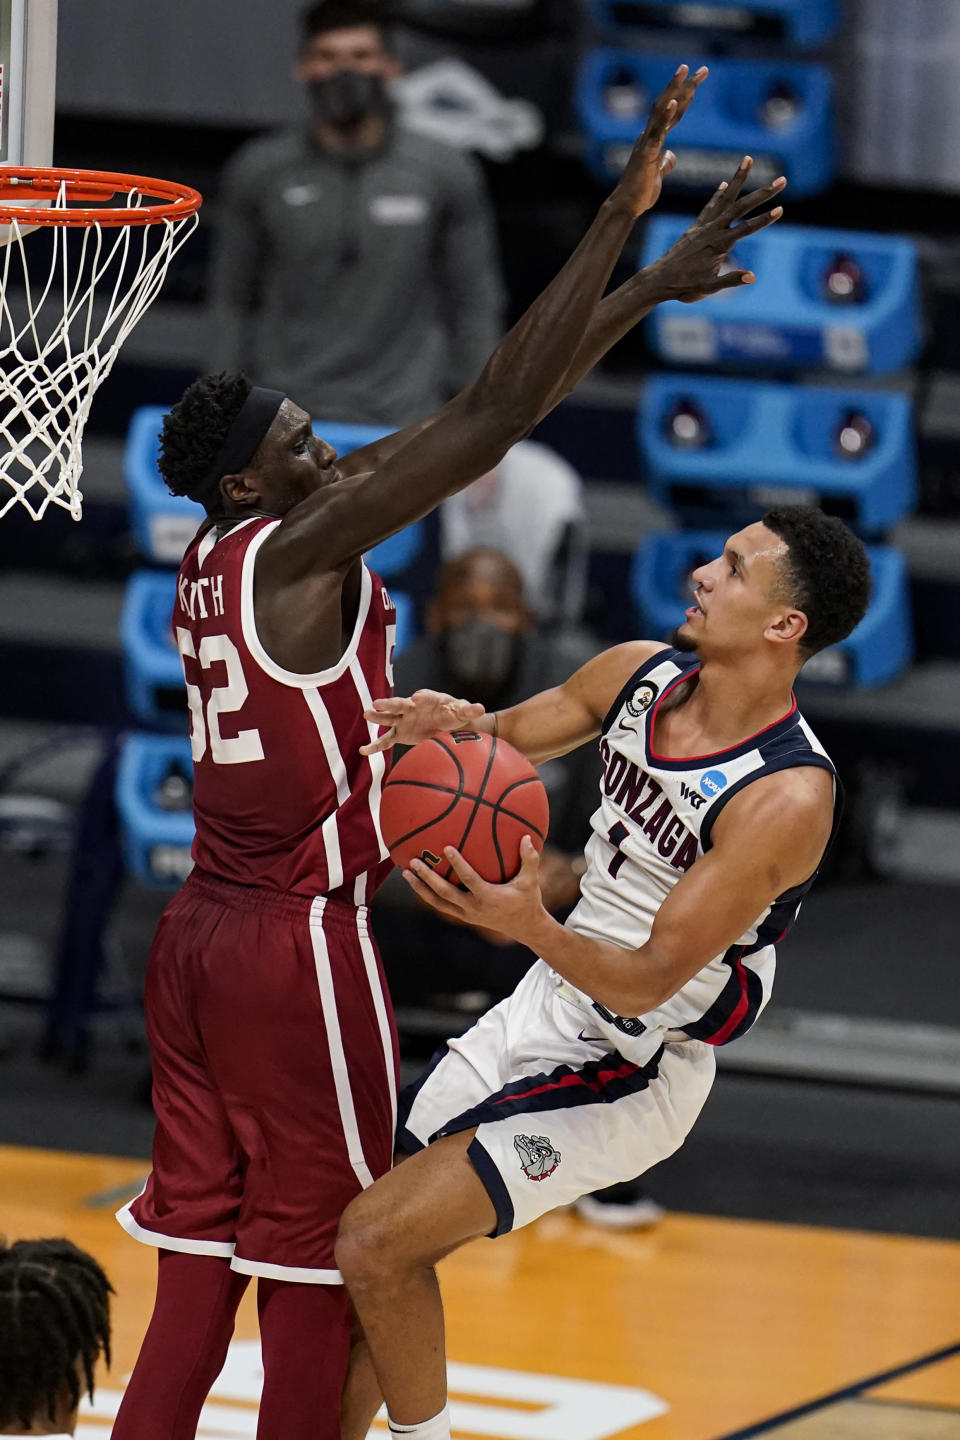 Gonzaga guard Jalen Suggs (1) shoots around Oklahoma forward Kur Kuath (52) in the second half of a second-round game in the NCAA men's college basketball tournament at Hinkle Fieldhouse in Indianapolis, Monday, March 22, 2021. (AP Photo/Michael Conroy)